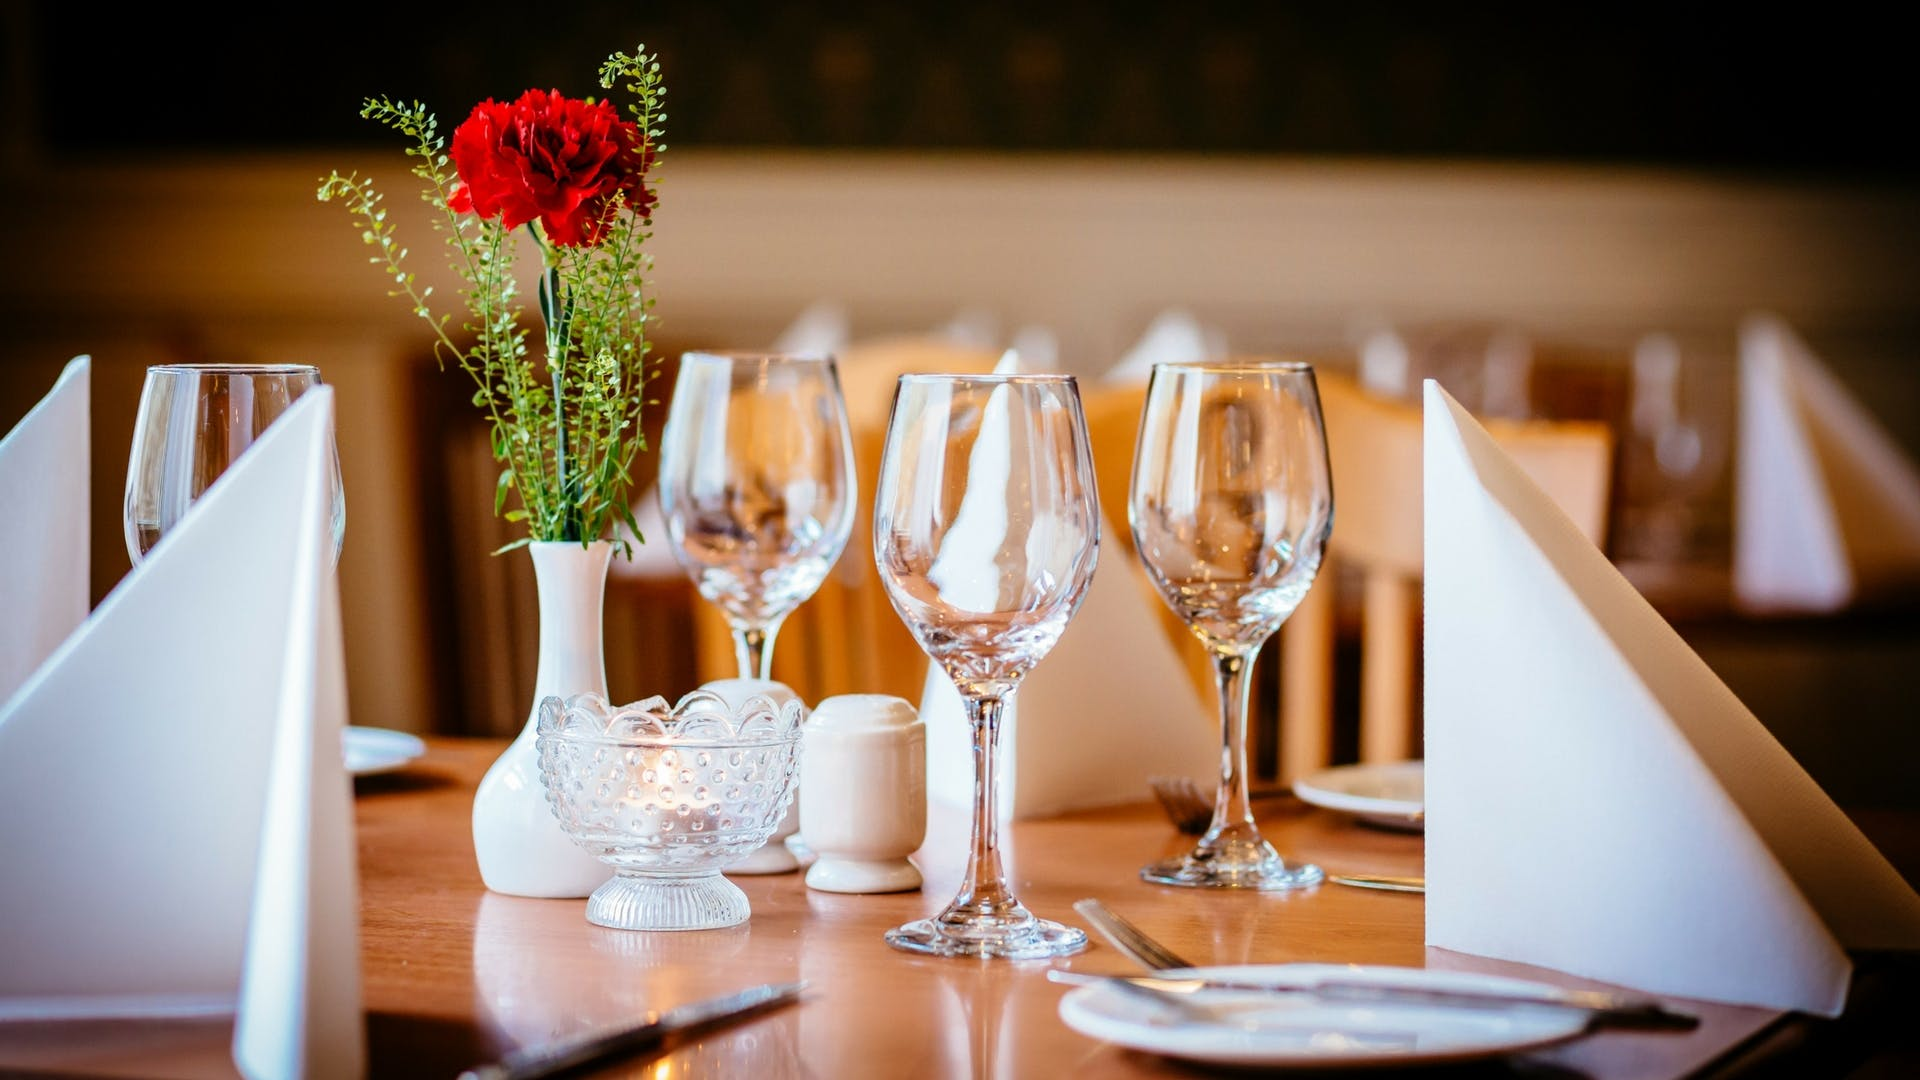 Evening dining at Gleesons Restaurant & Rooms, Roscommon